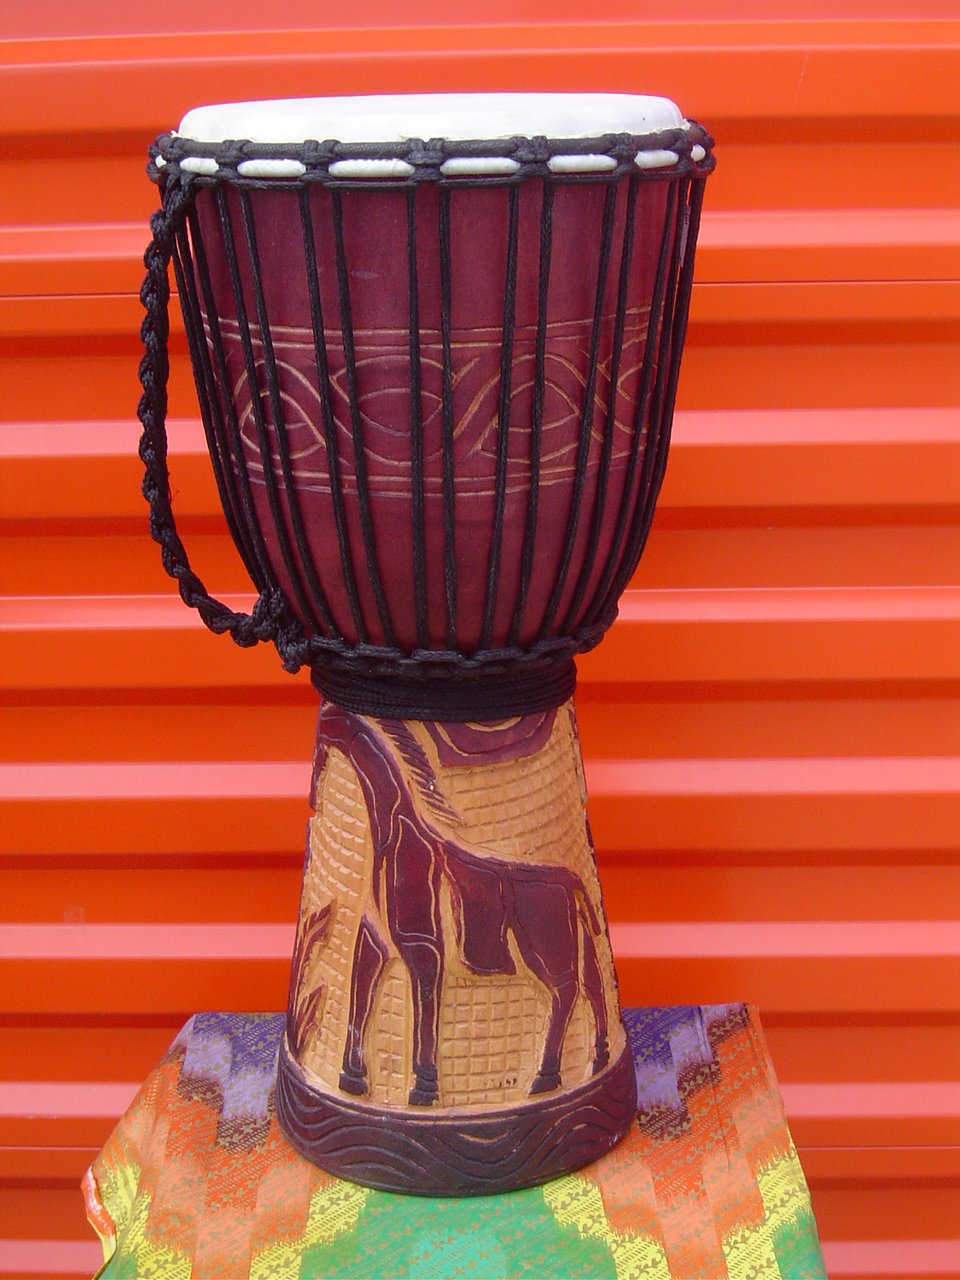 20'' X 10-11'' Deep Carved Djembe Bongo Drum GIRAFFES with Free Cover, Model # 50M20